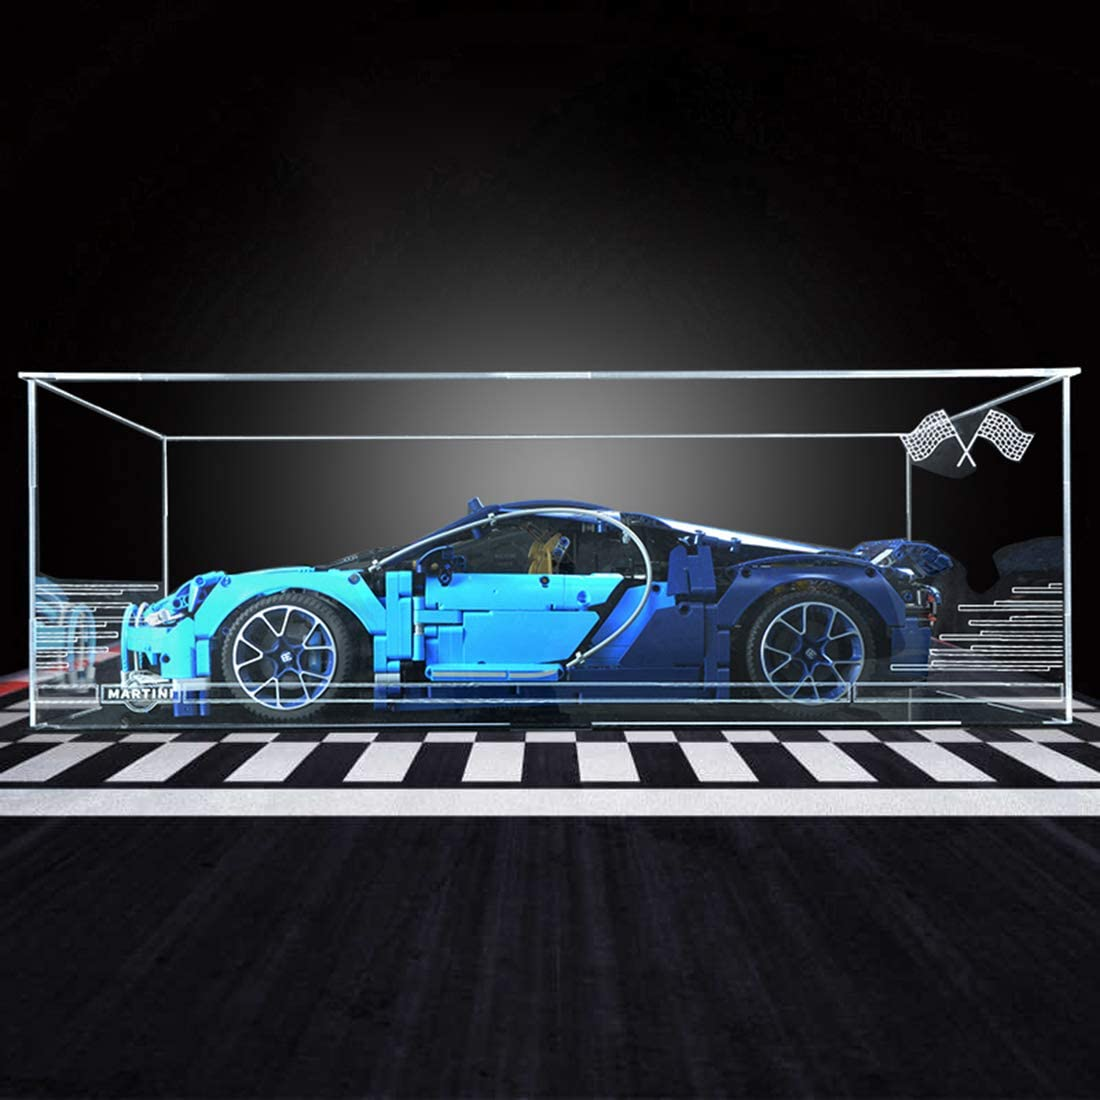 POXL Acrylic Display Case/Box for (Technic Bugatti Chiron) Building Kit Models - Dustproof Display Box Compatible with Lego 42083 (ONLY Display Box)